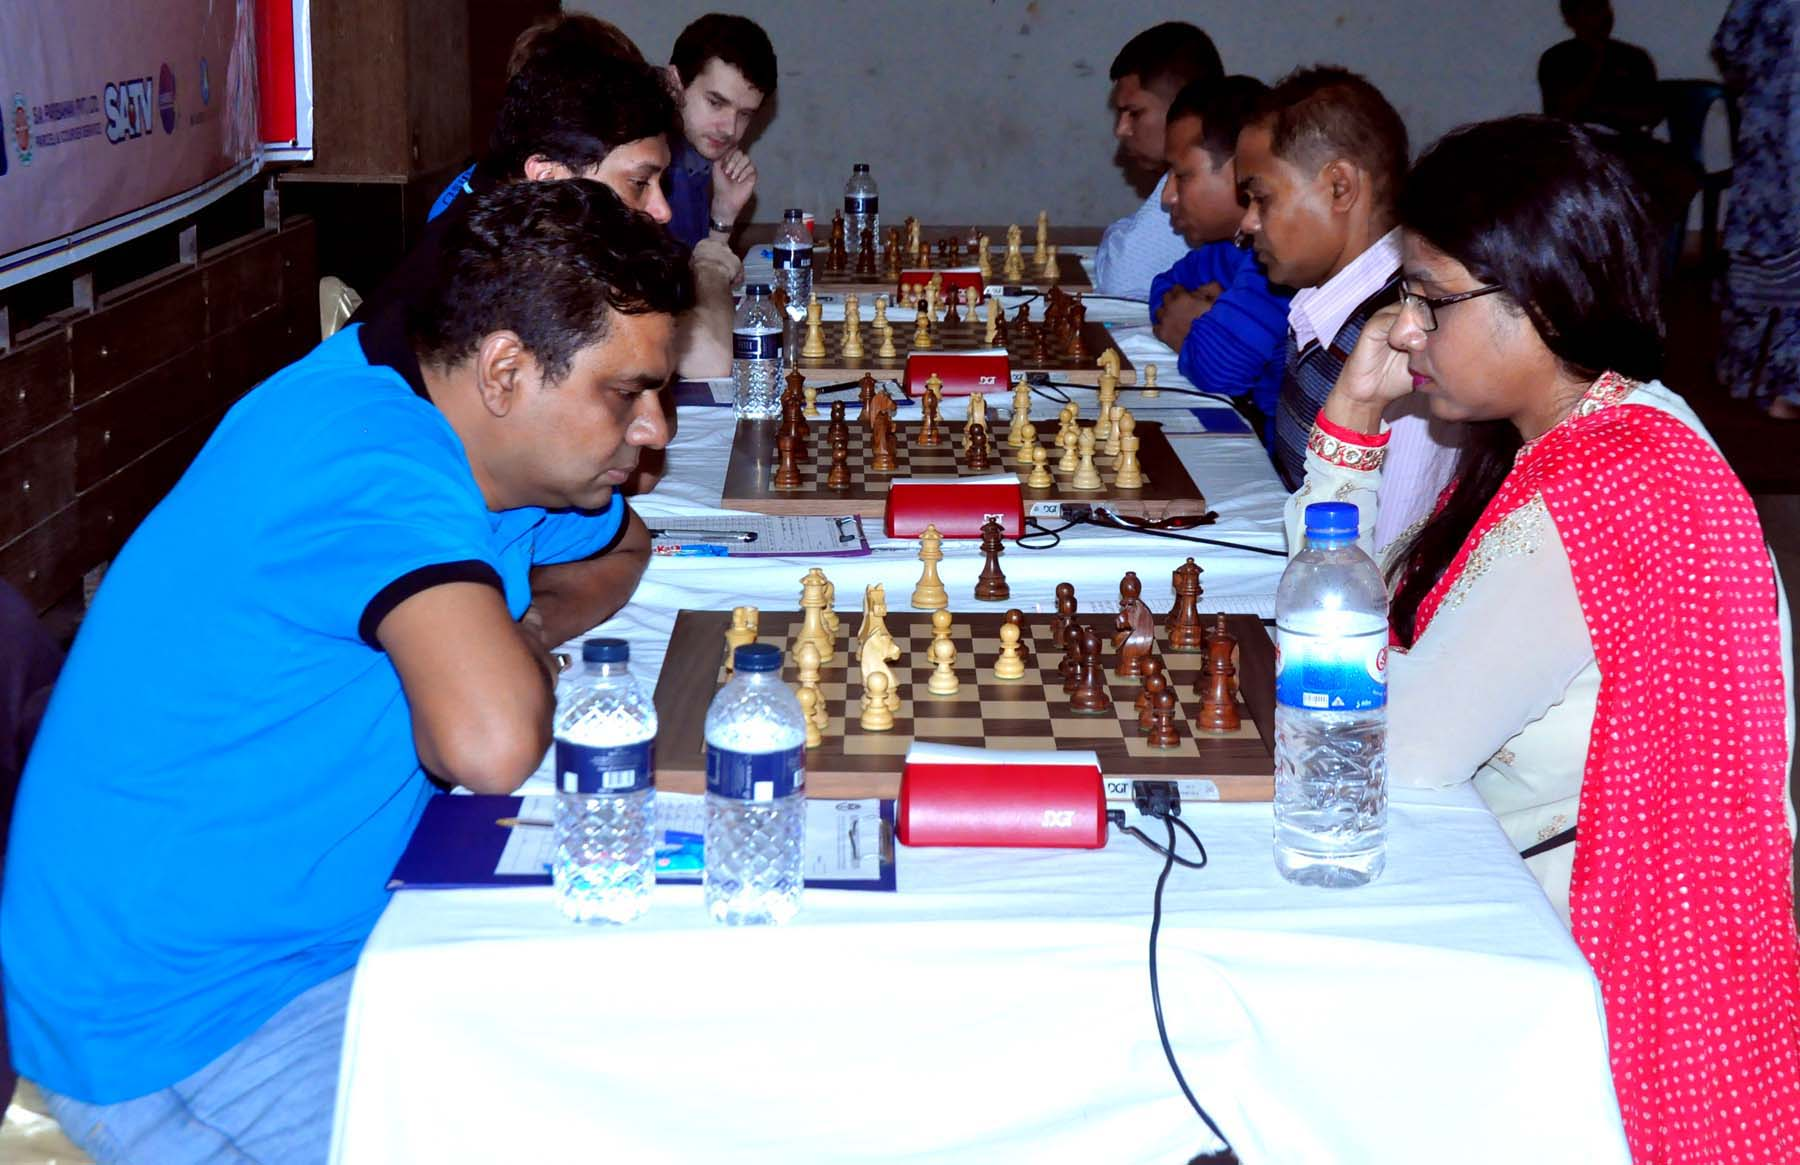 A scene from the SA Group Premier Division Chess League at the Auditorium of the National Sports Council Tower on Wednesday.